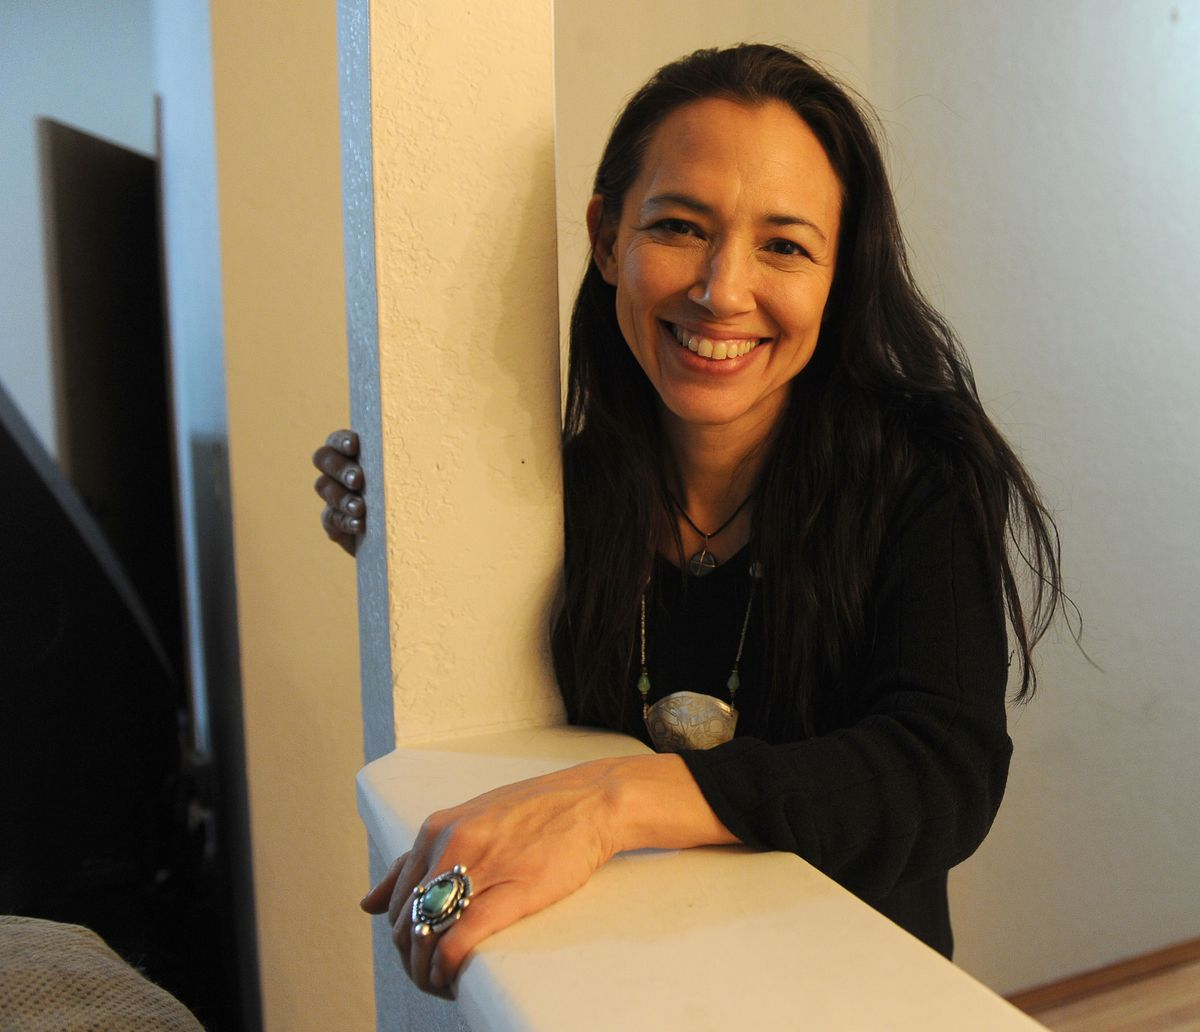 "Irene Bedard poses with Martin the black cat in south Anchorage on Wednesday, February 18, 2015. The Alaska Native actress and producer, from Anchorage, plans to bring a film version of ""Two Old Women"" by Velma Wallis to theaters. (Bob Hallinen / Alaska Dispatch News)"